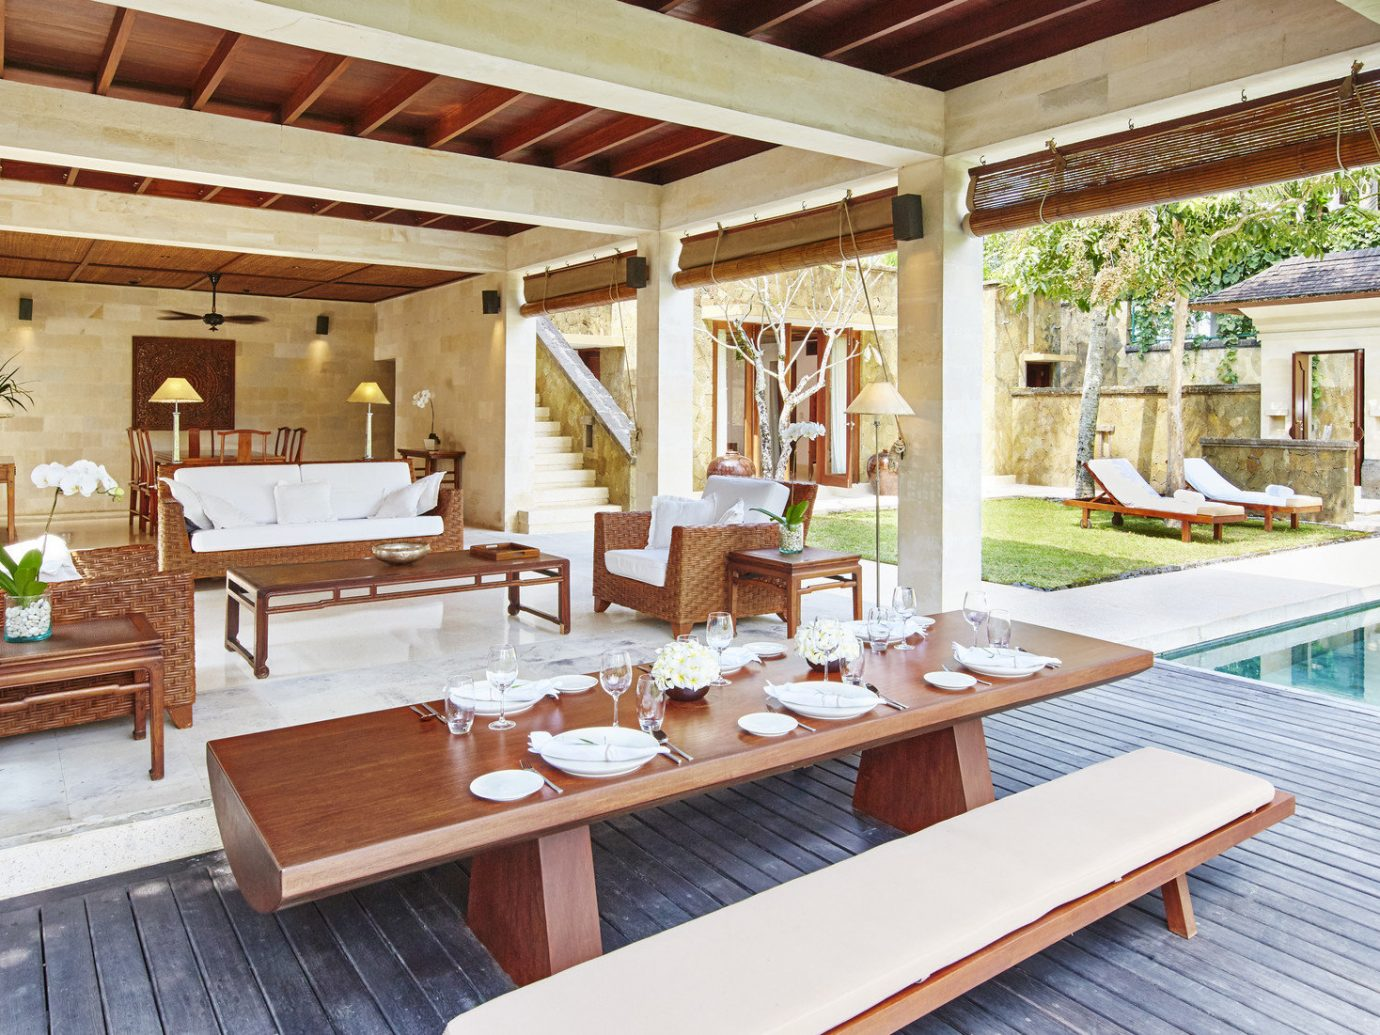 Health + Wellness Hotels table floor indoor property chair building room Living estate Resort wooden Villa home interior design living room cottage real estate outdoor structure furniture porch wood farmhouse dining room Deck